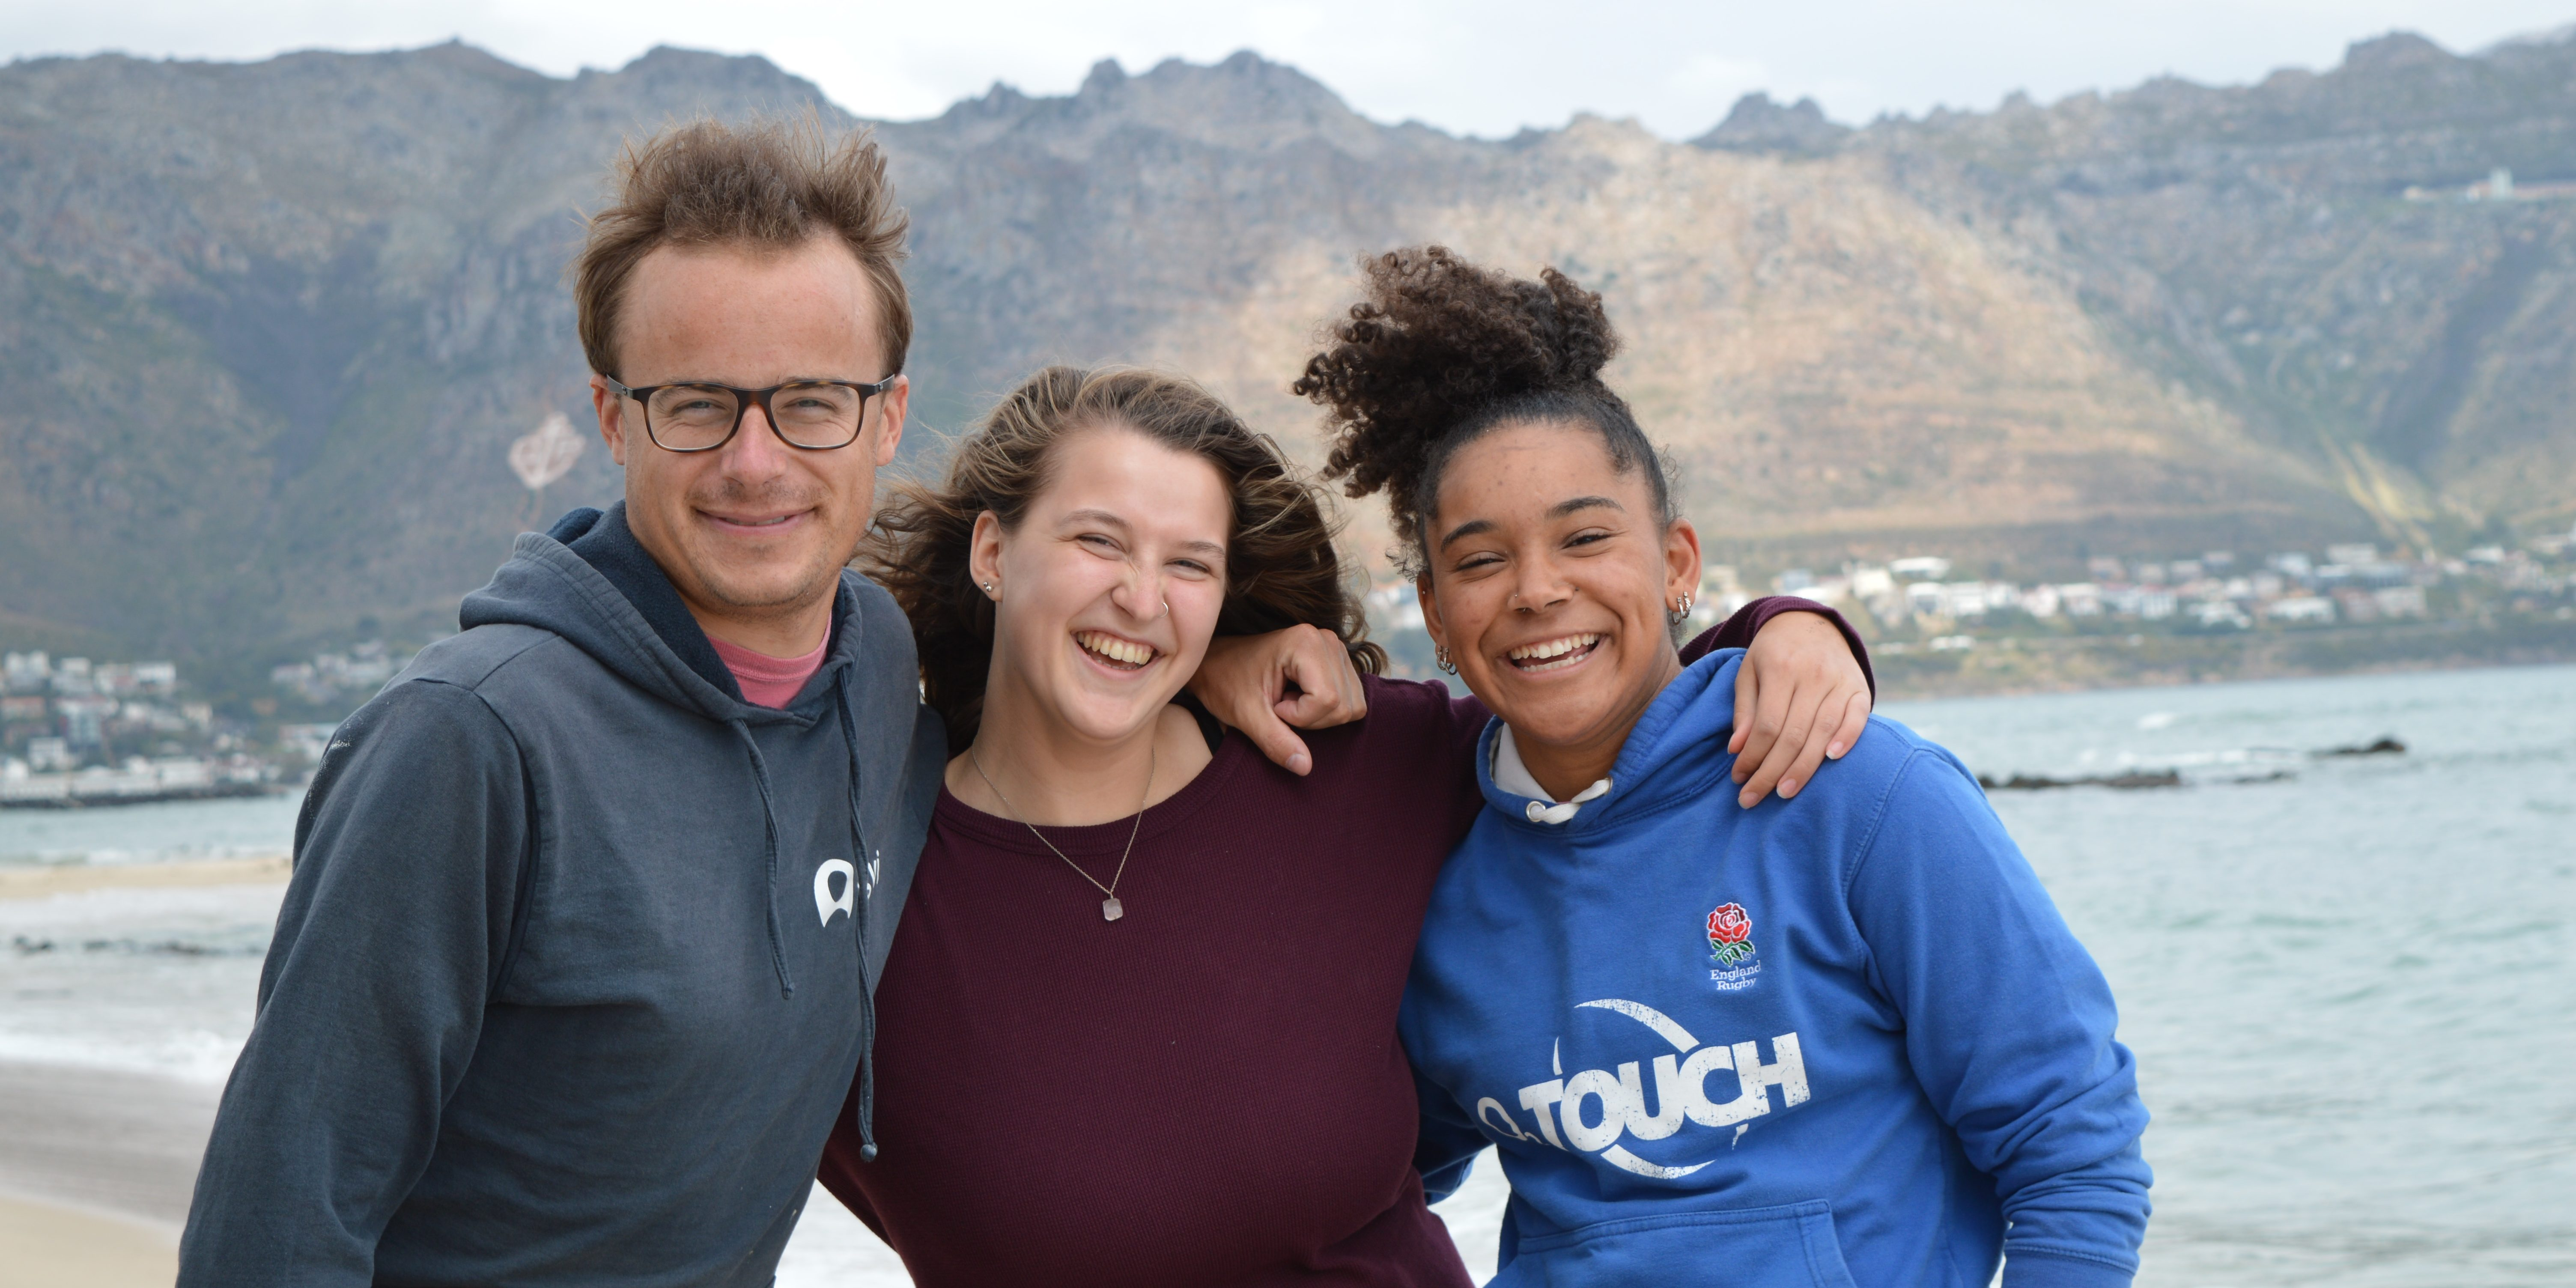 Volunteers in Cape Town enjoy time on the beach.